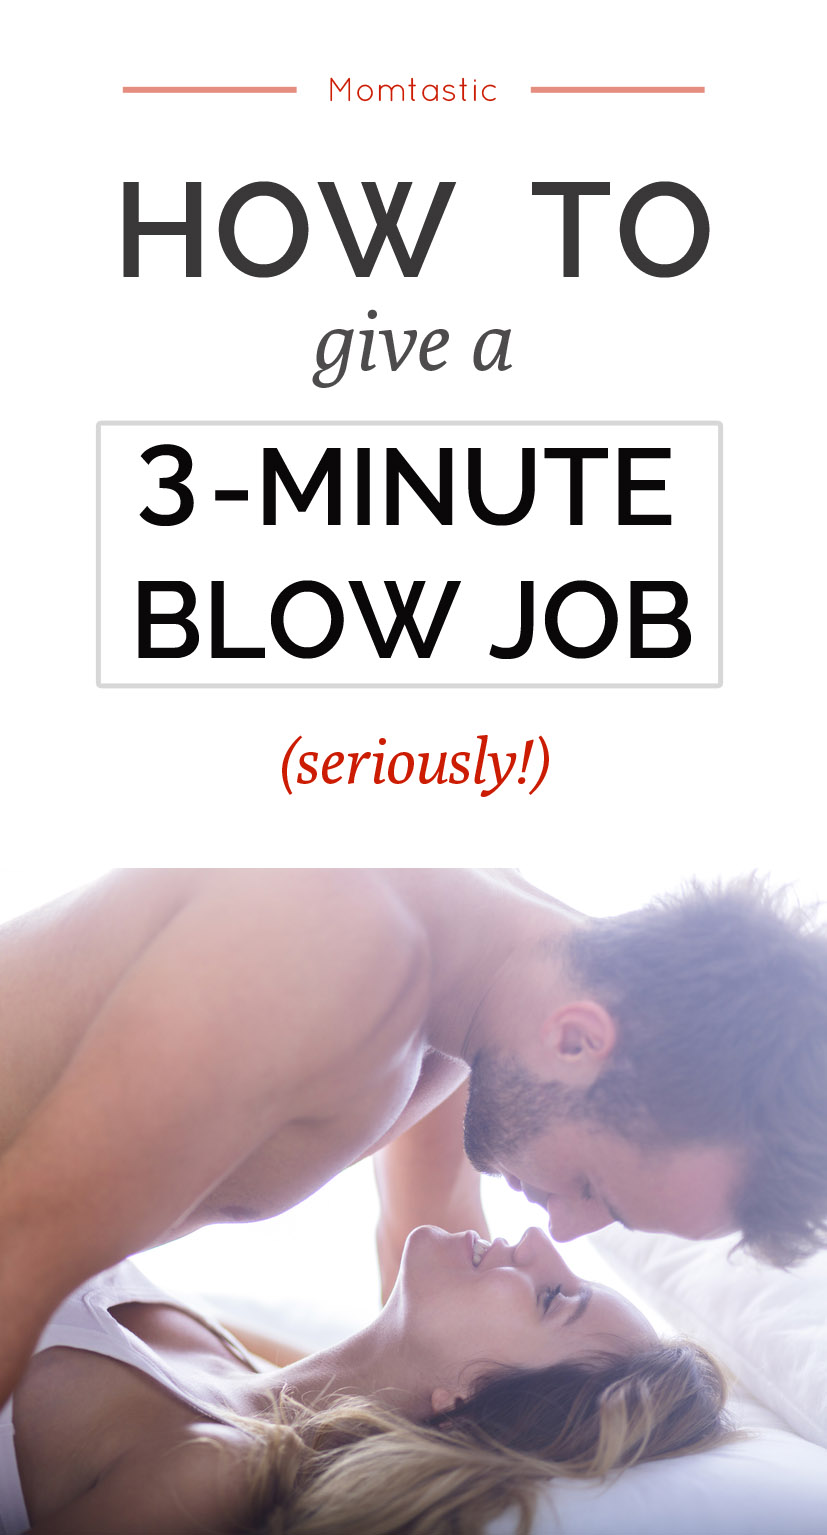 tips on how to give a great blow job Tips For Giving a Great Blow Job | L.A.